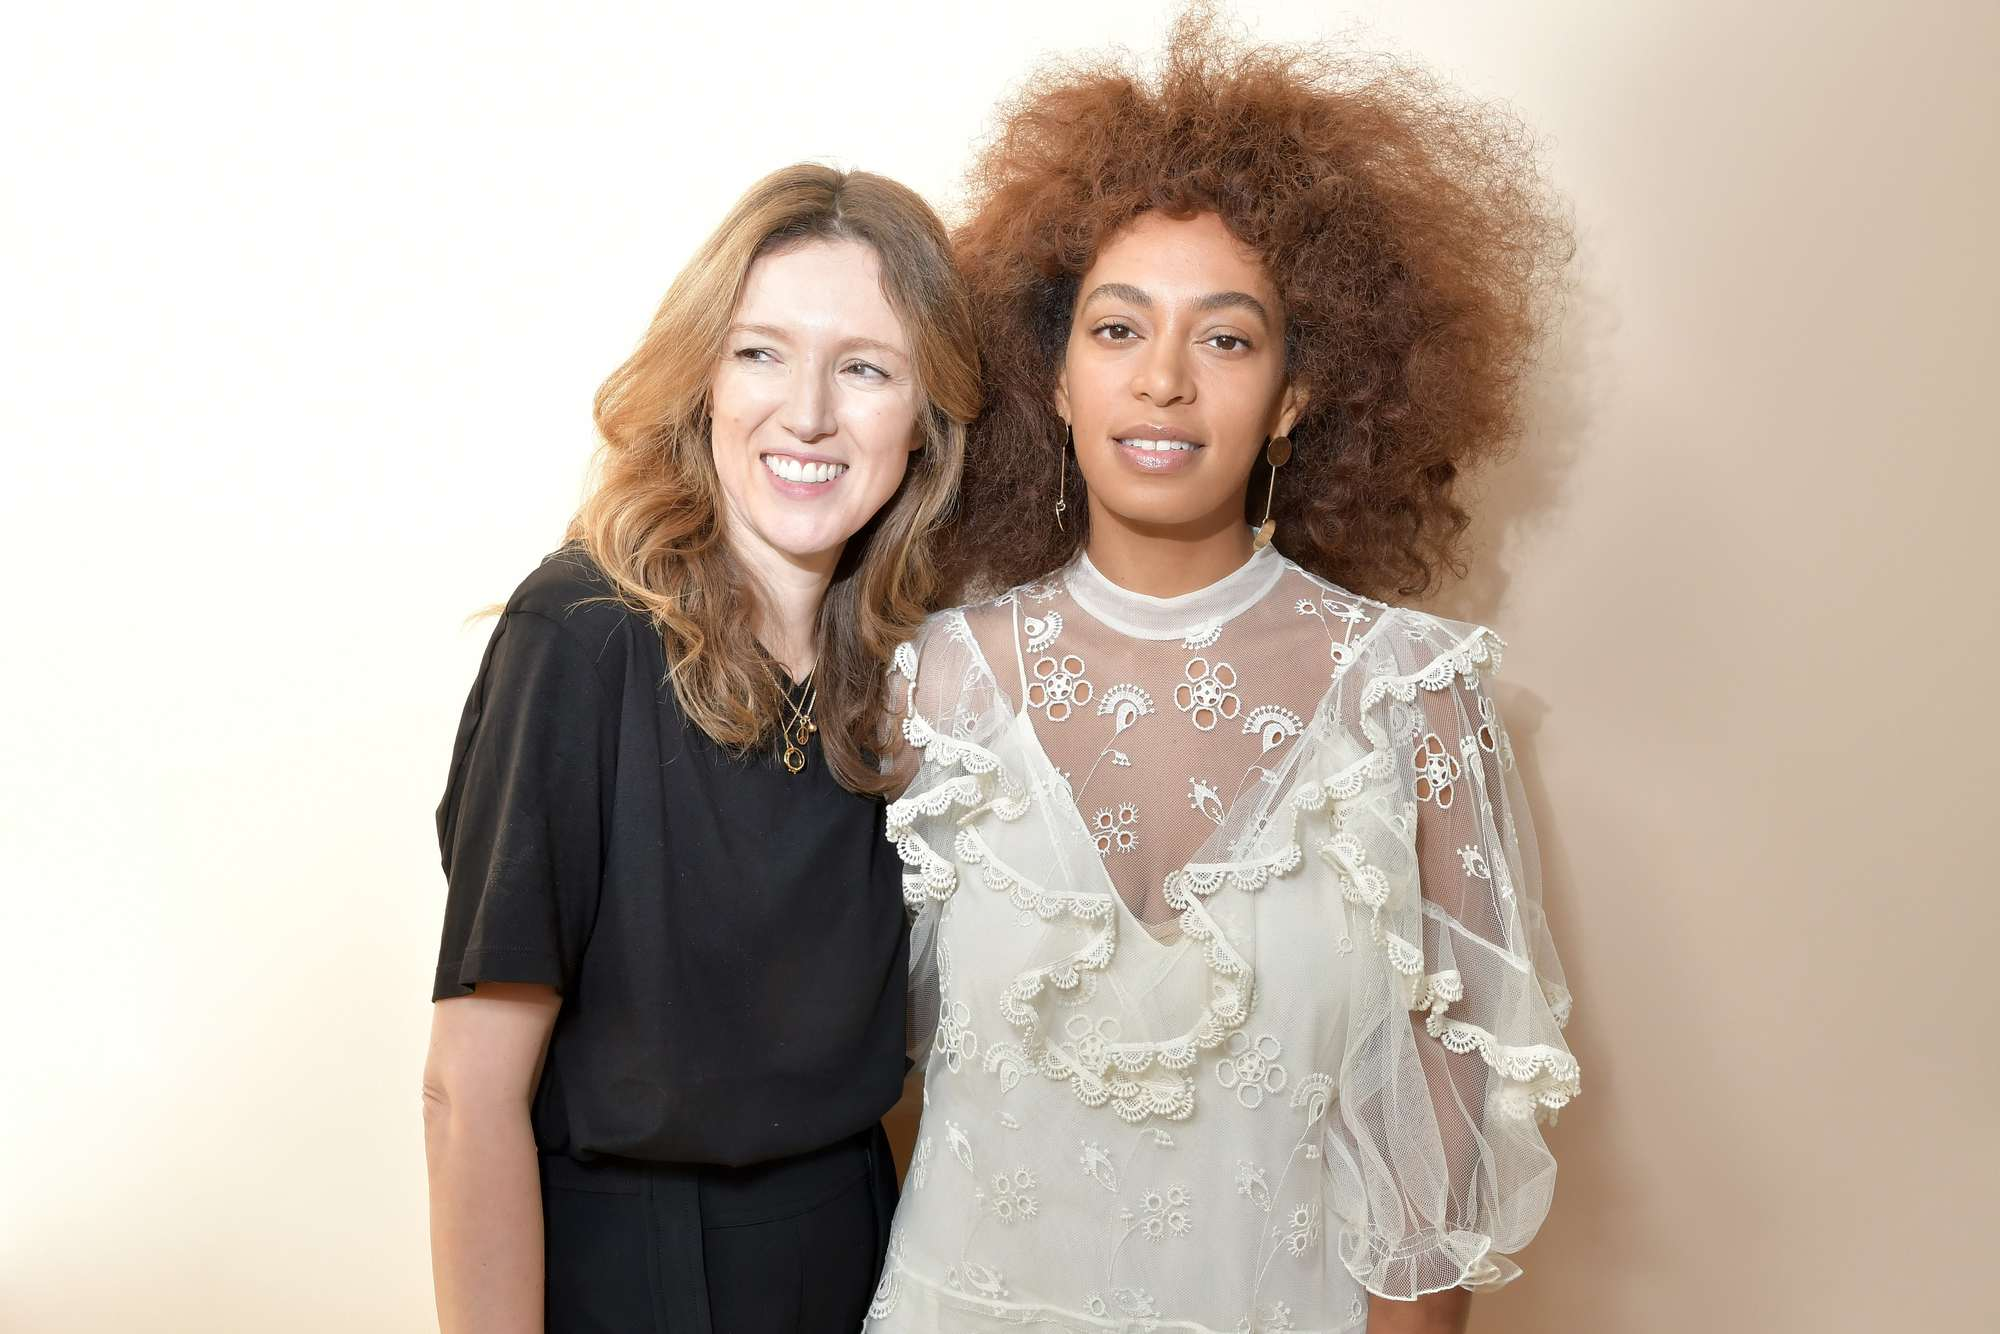 solange knowles at the chloe paris fashion week show with light auburn brown hair